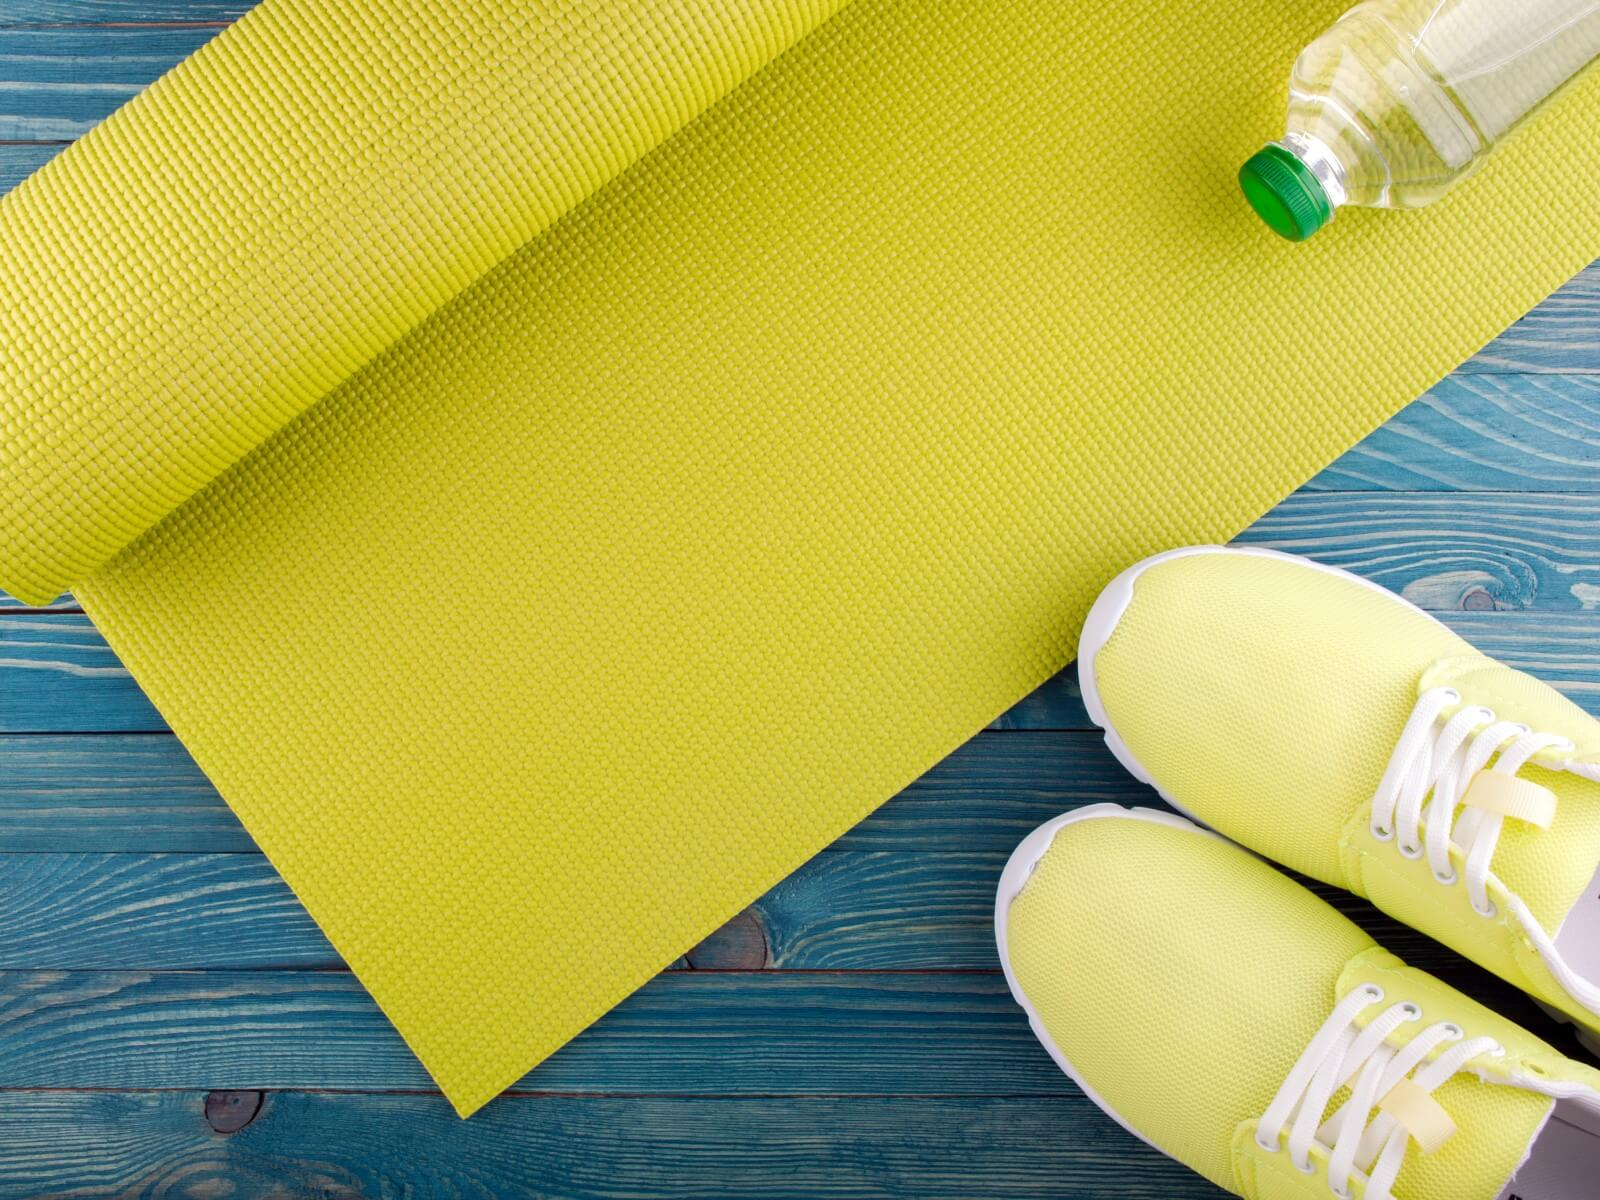 Yellow mat and shoes with water bottle.